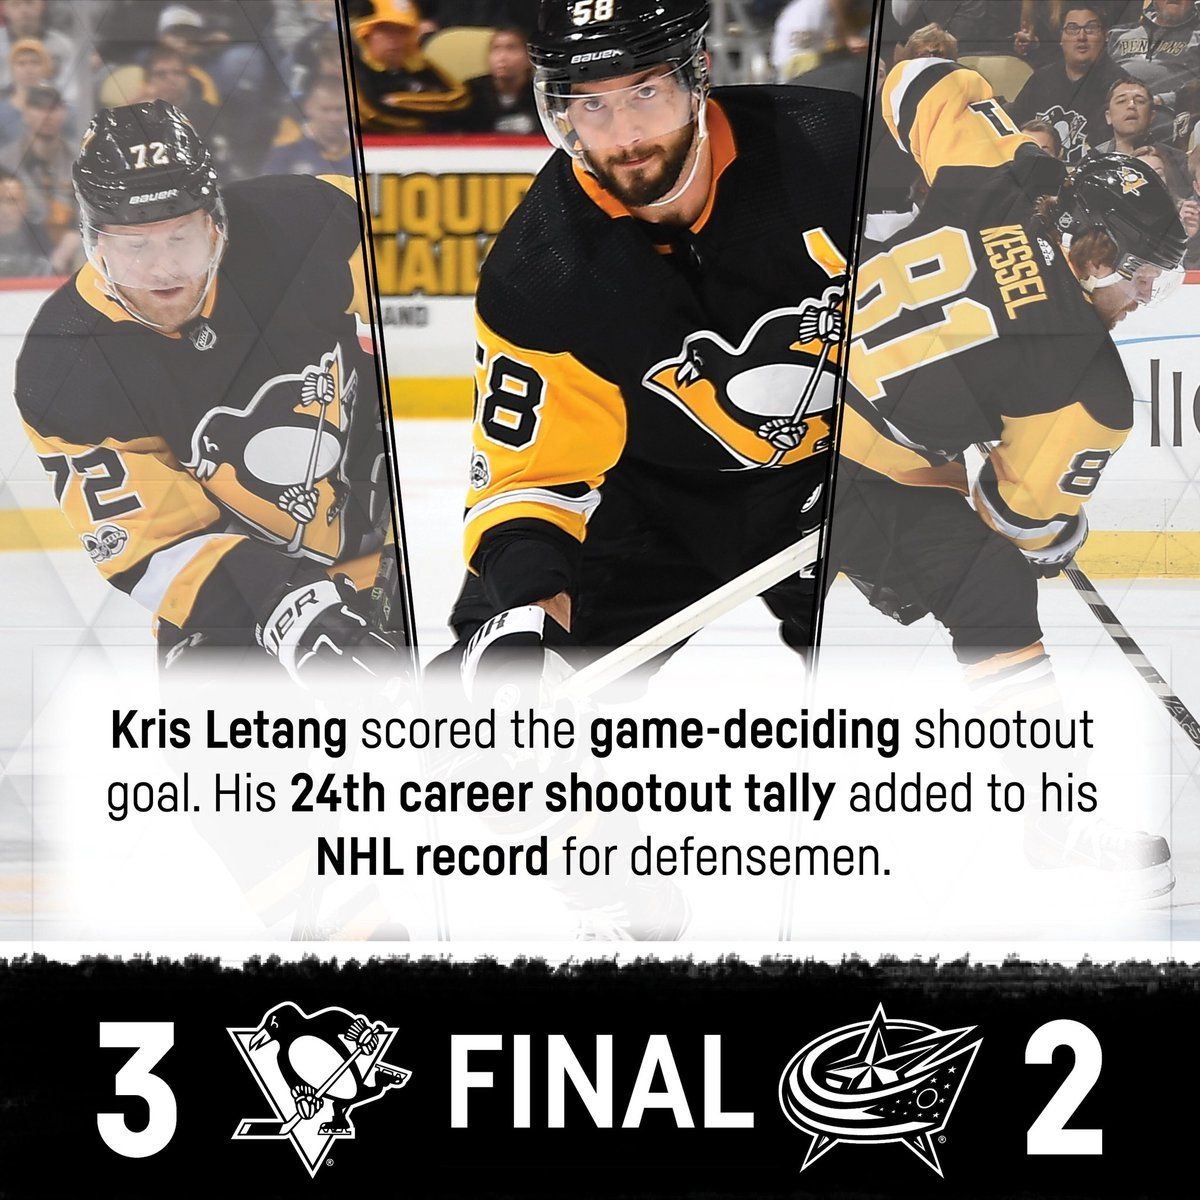 I'm still mad the Jackets lost but great job Letang